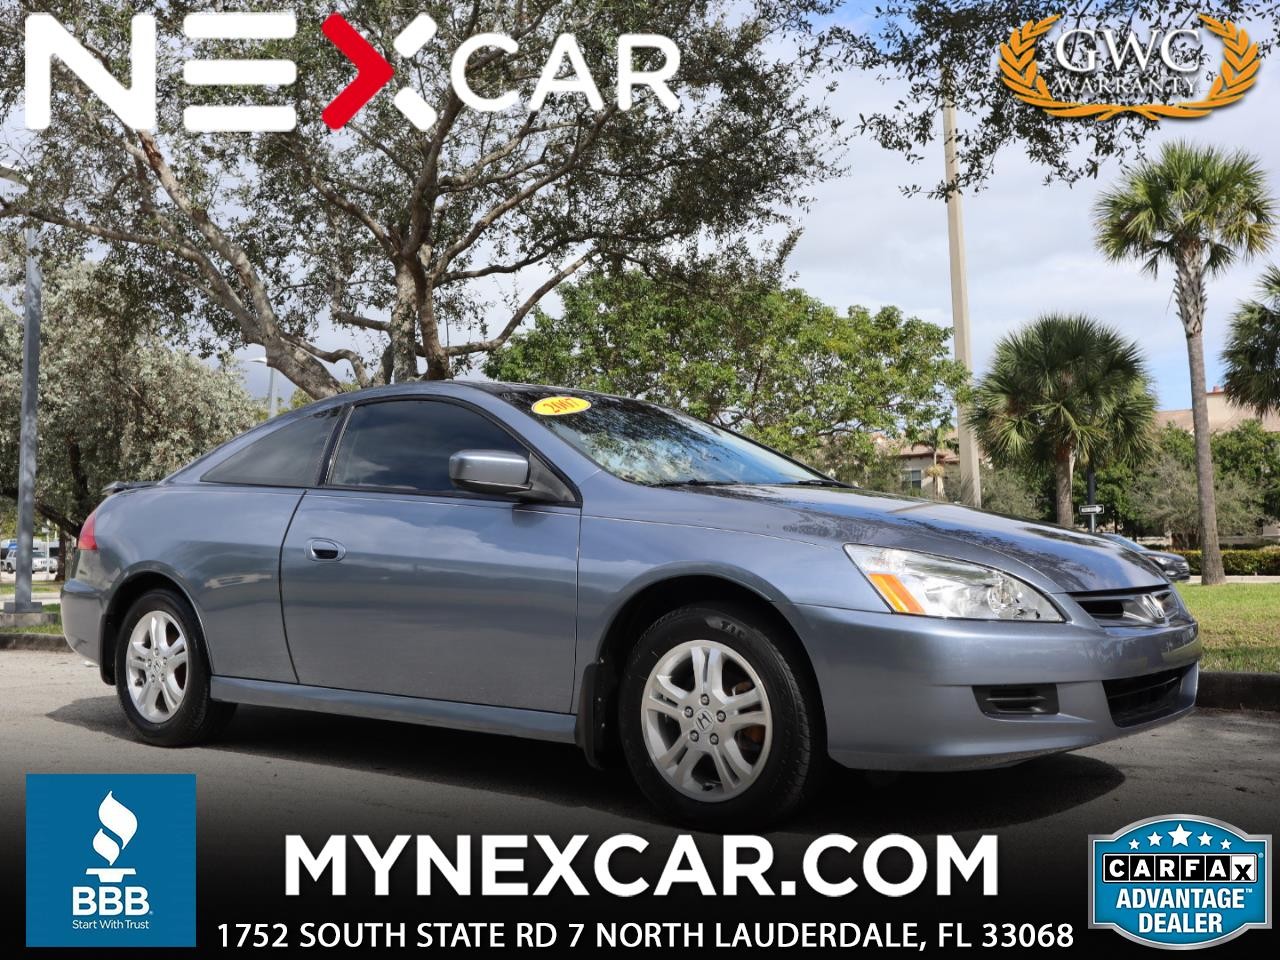 2007 Honda Accord Cpe 2dr I4 AT EX-L